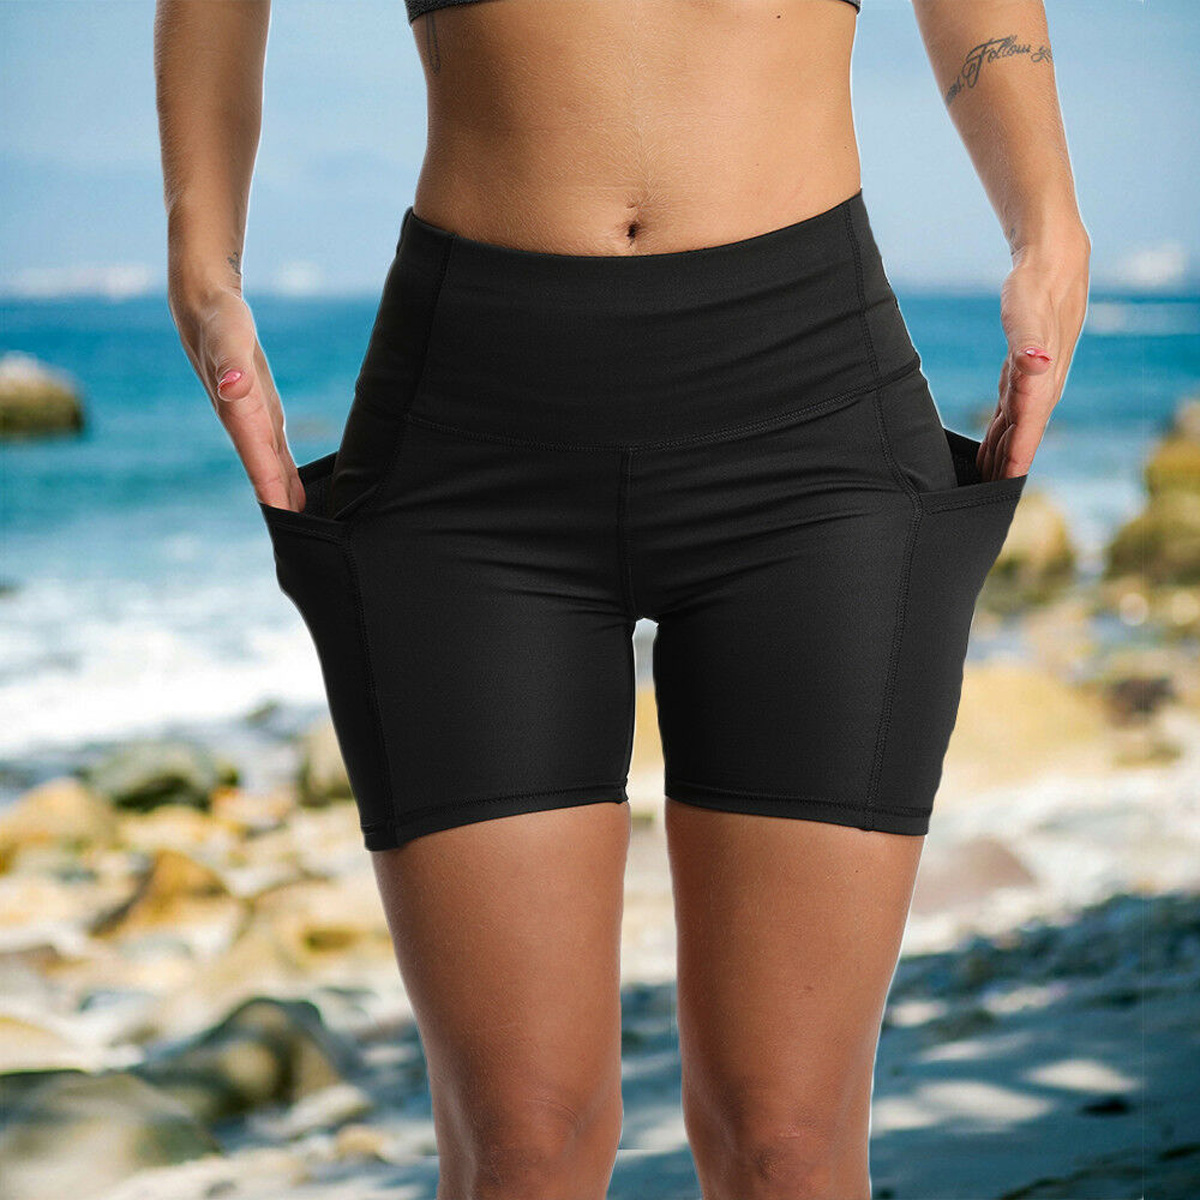 Women's High Waist Sports Short Workout Running Fitness Leggings Female Shorts Gym Leggings With Side Pocket